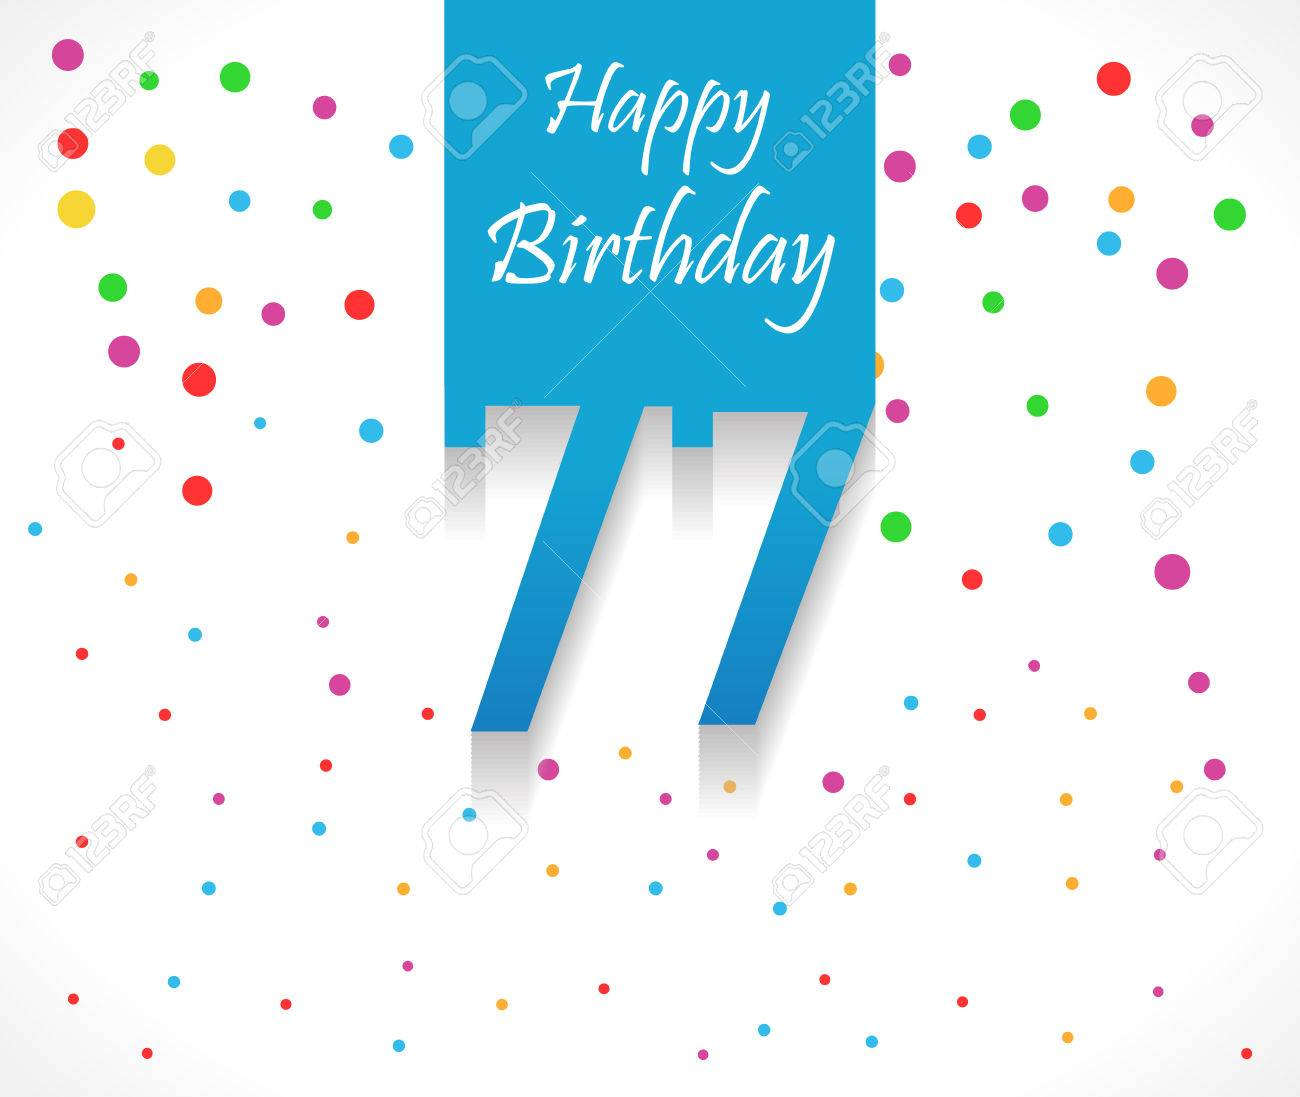 77 Years Happy Birthday Background Or Card With Colorful Confetti Polka Dots Vector Eps10